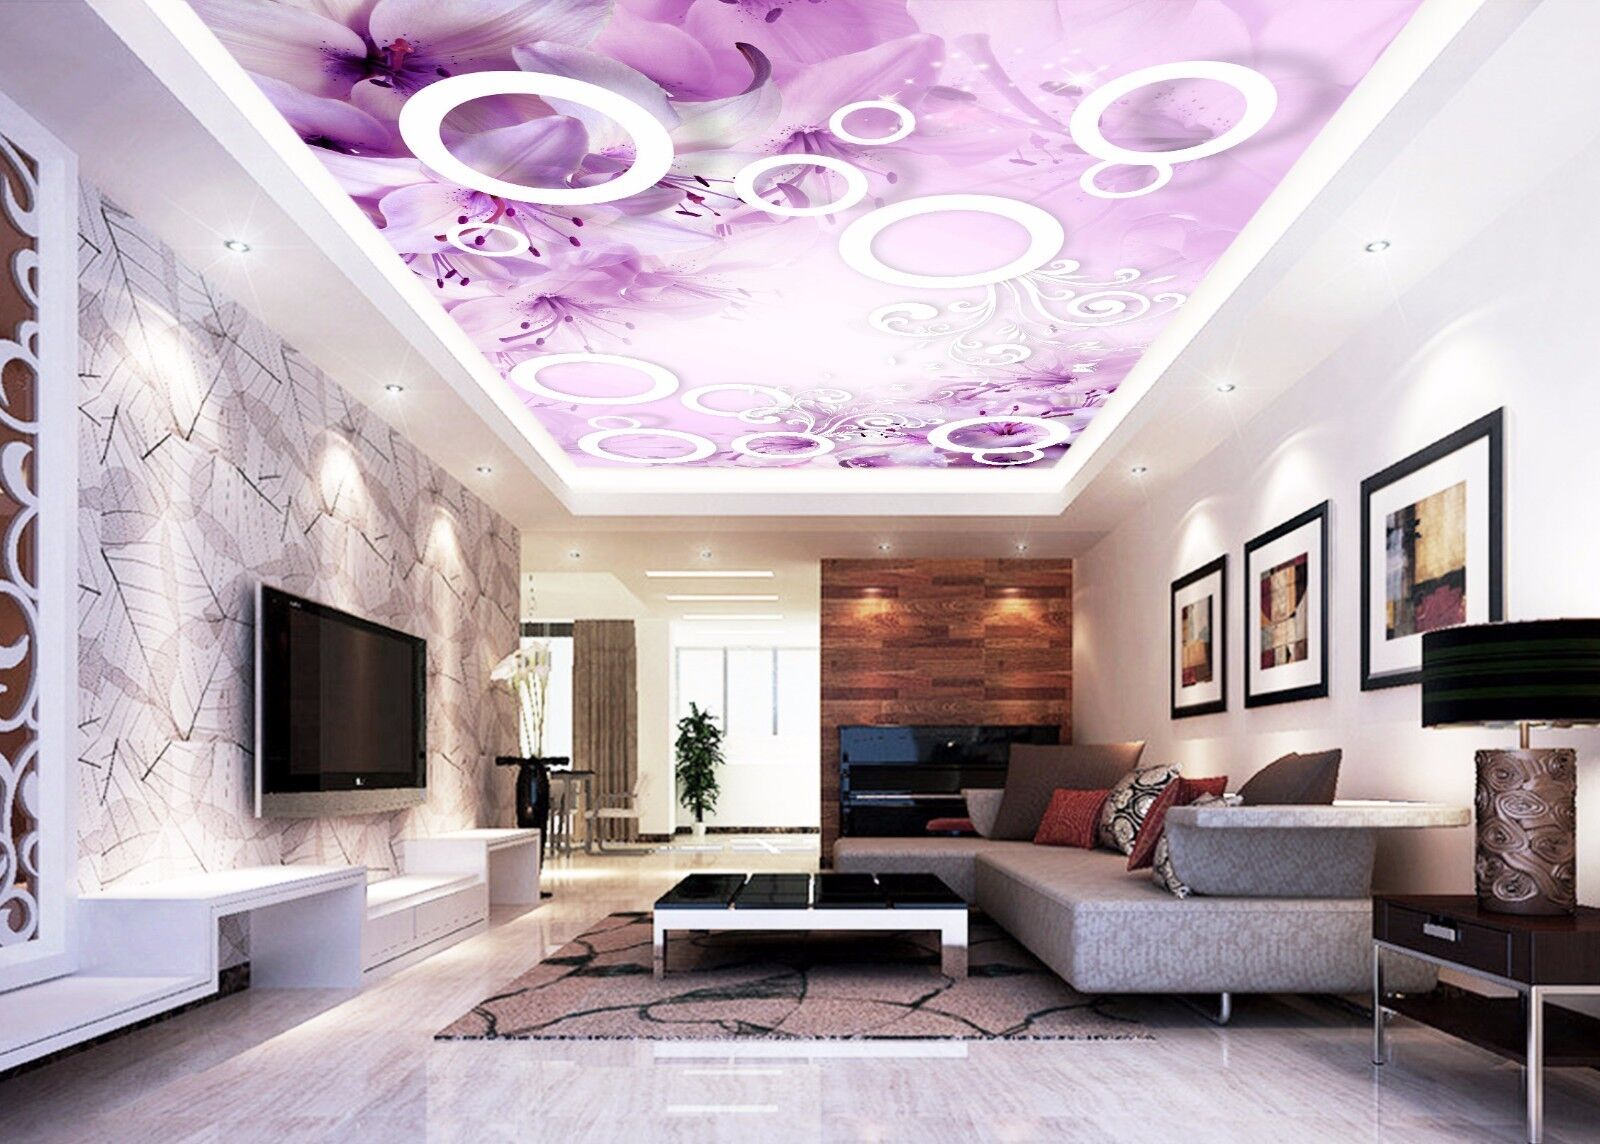 3D Round Flowers 85 Ceiling WallPaper Murals Wall Print Decal Deco AJ WALLPAPER